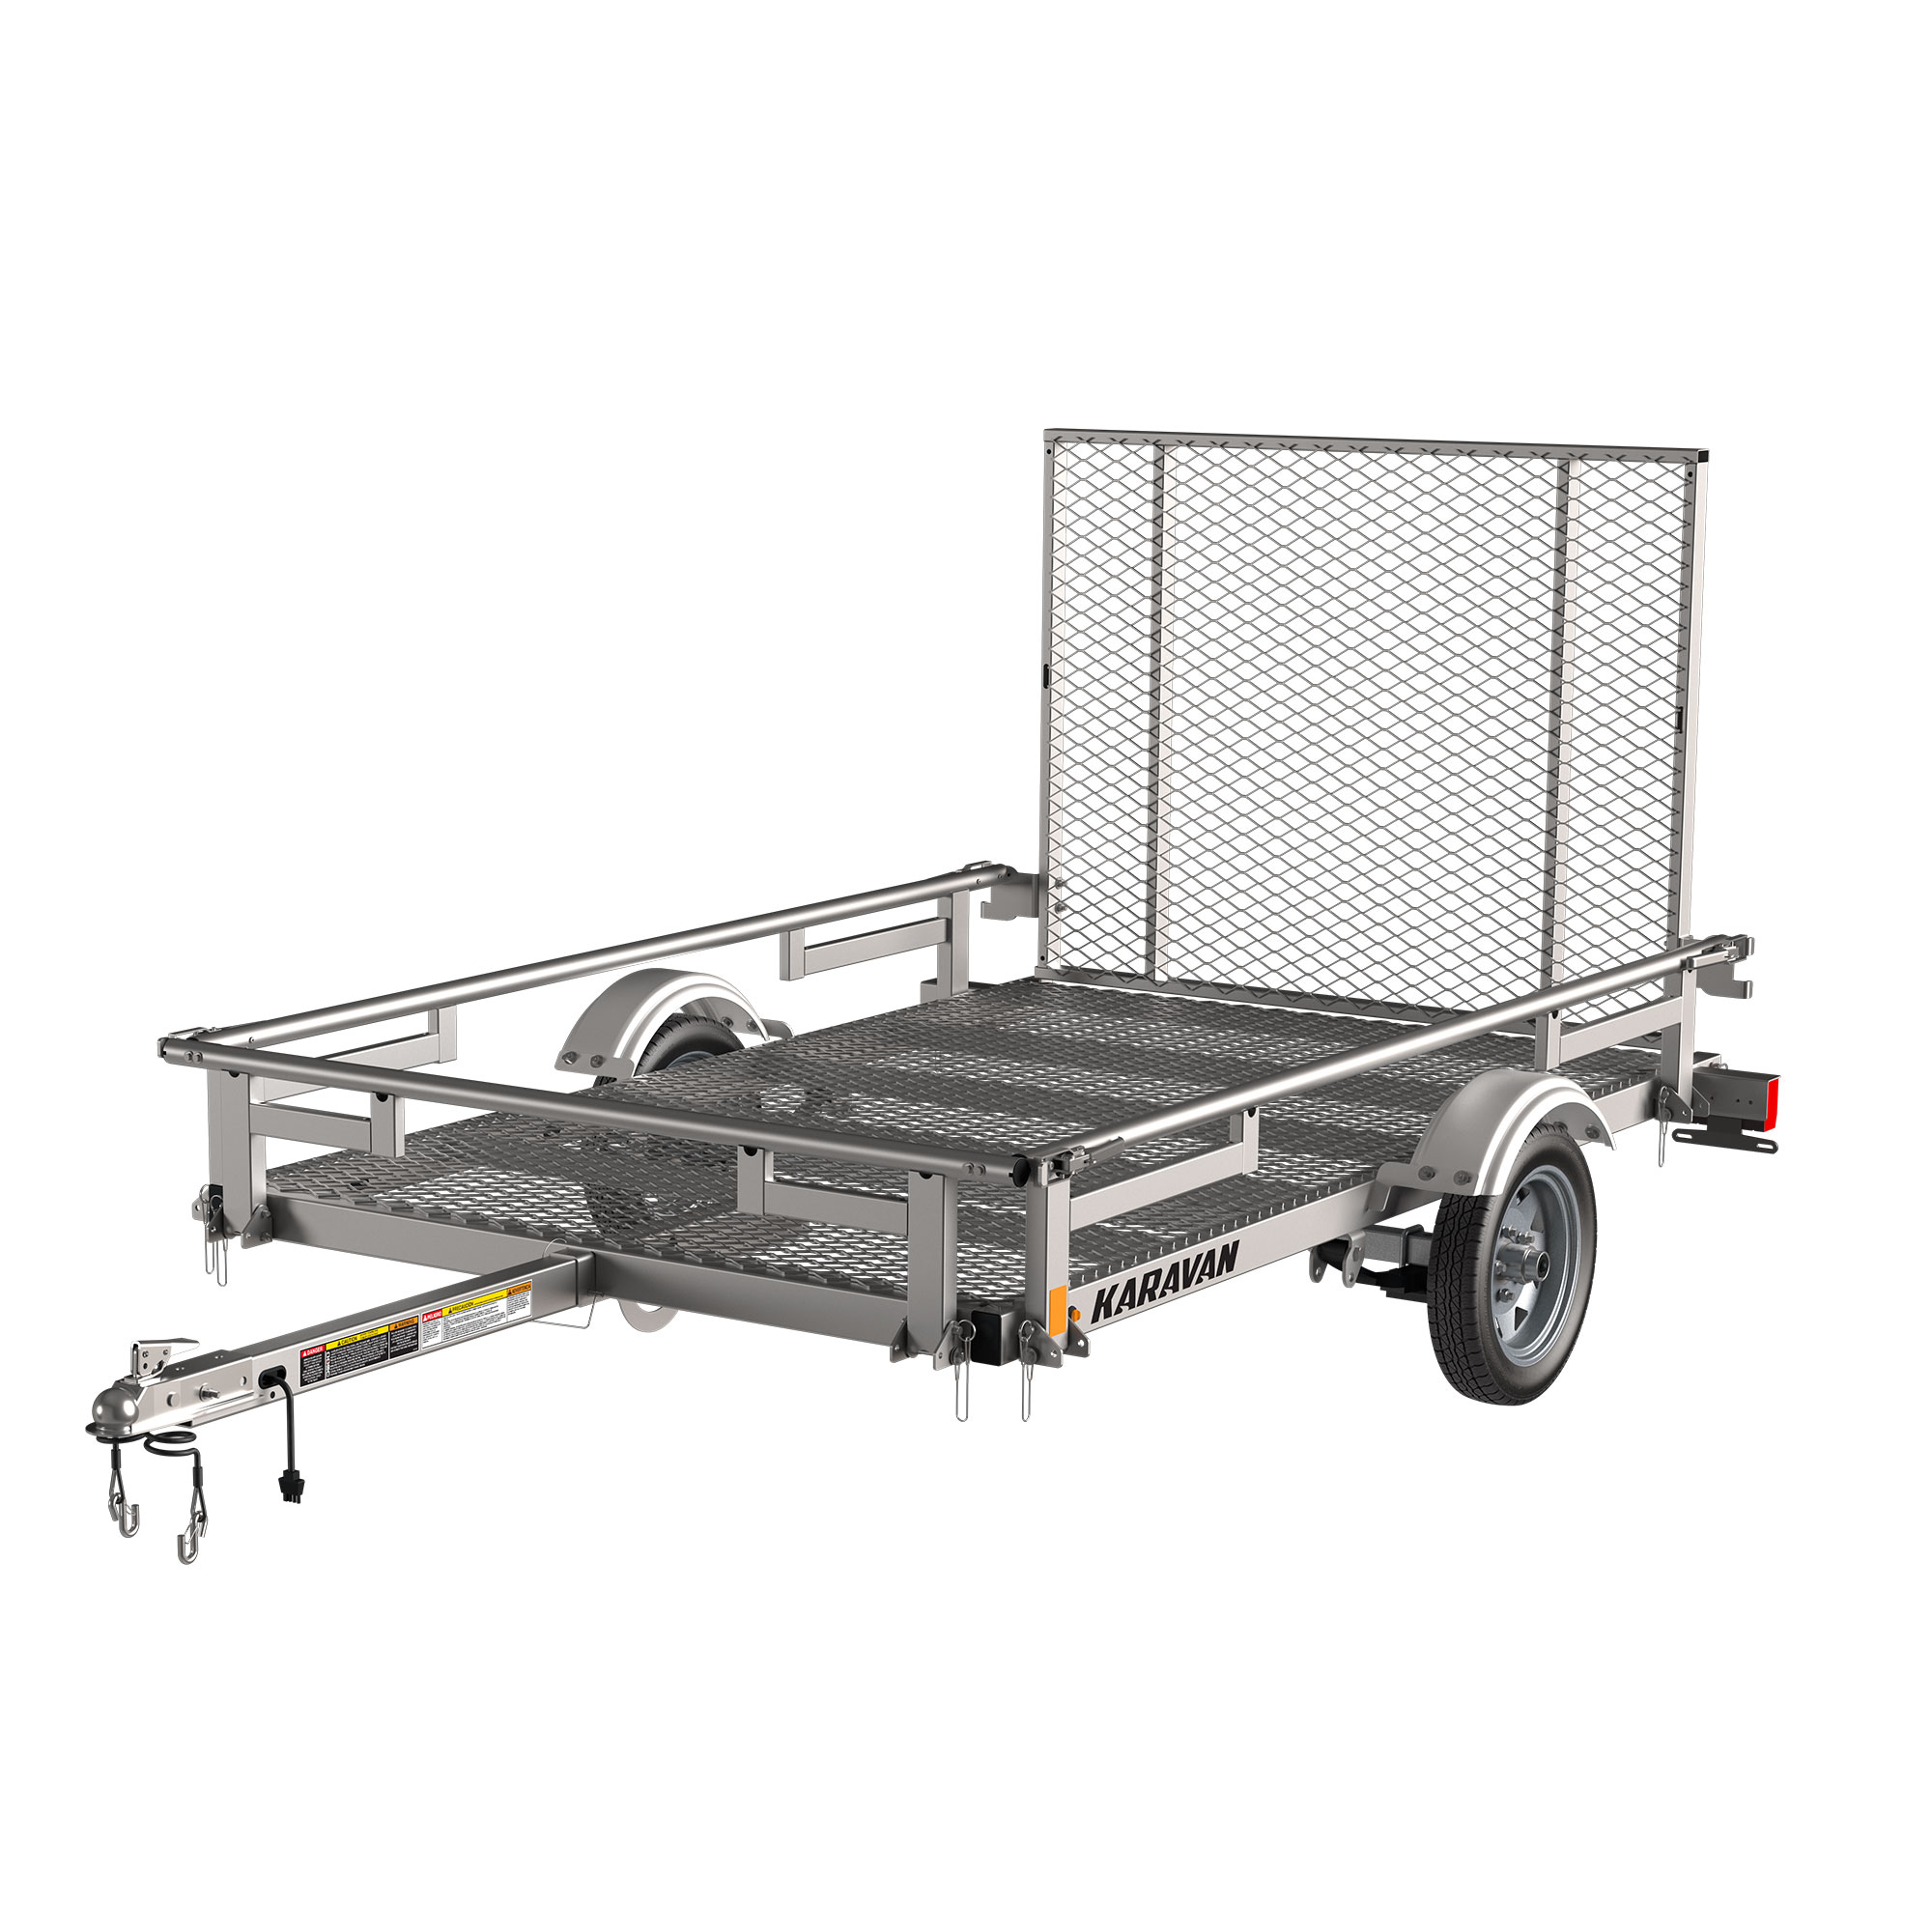 Karavan Trailer's 5 x 8 Ft. Steel Utility Trailer with Steel Mesh Floor, model number 2000-60-8-PRM-GG